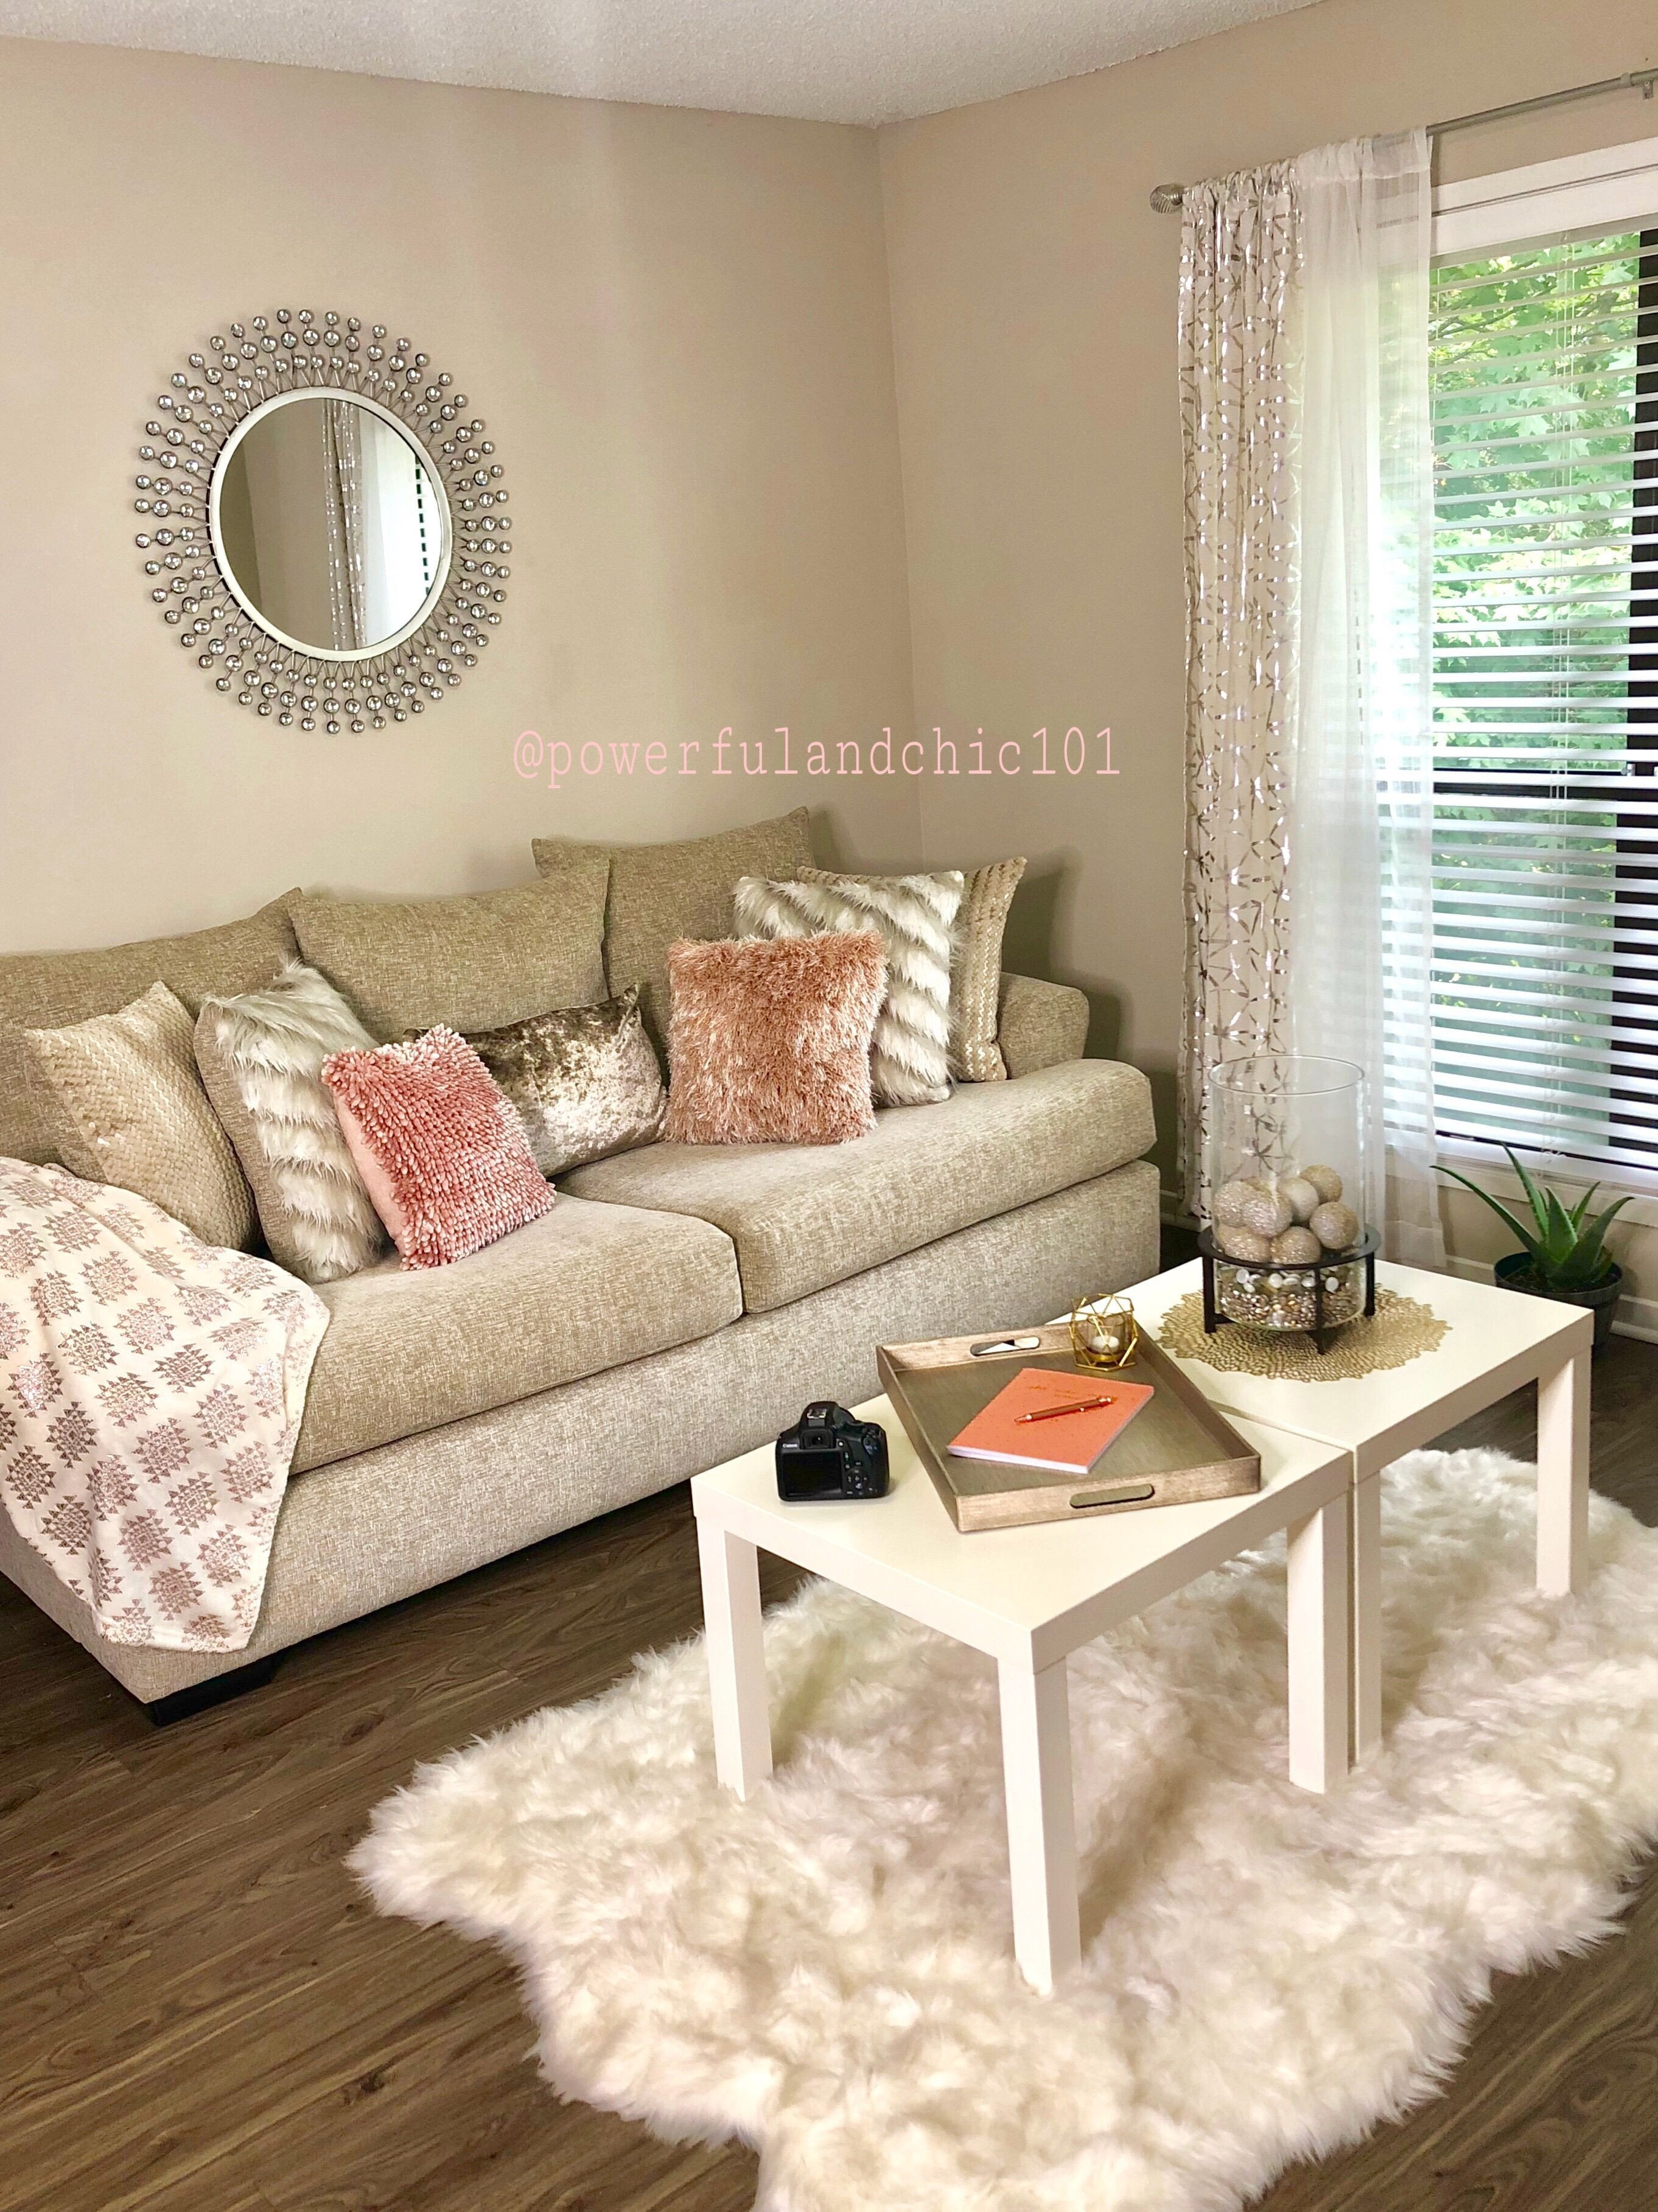 Pink and Gold Bedroom Ideas Beautiful Blush Pink Gold White and Cream Living Room Decor Decor